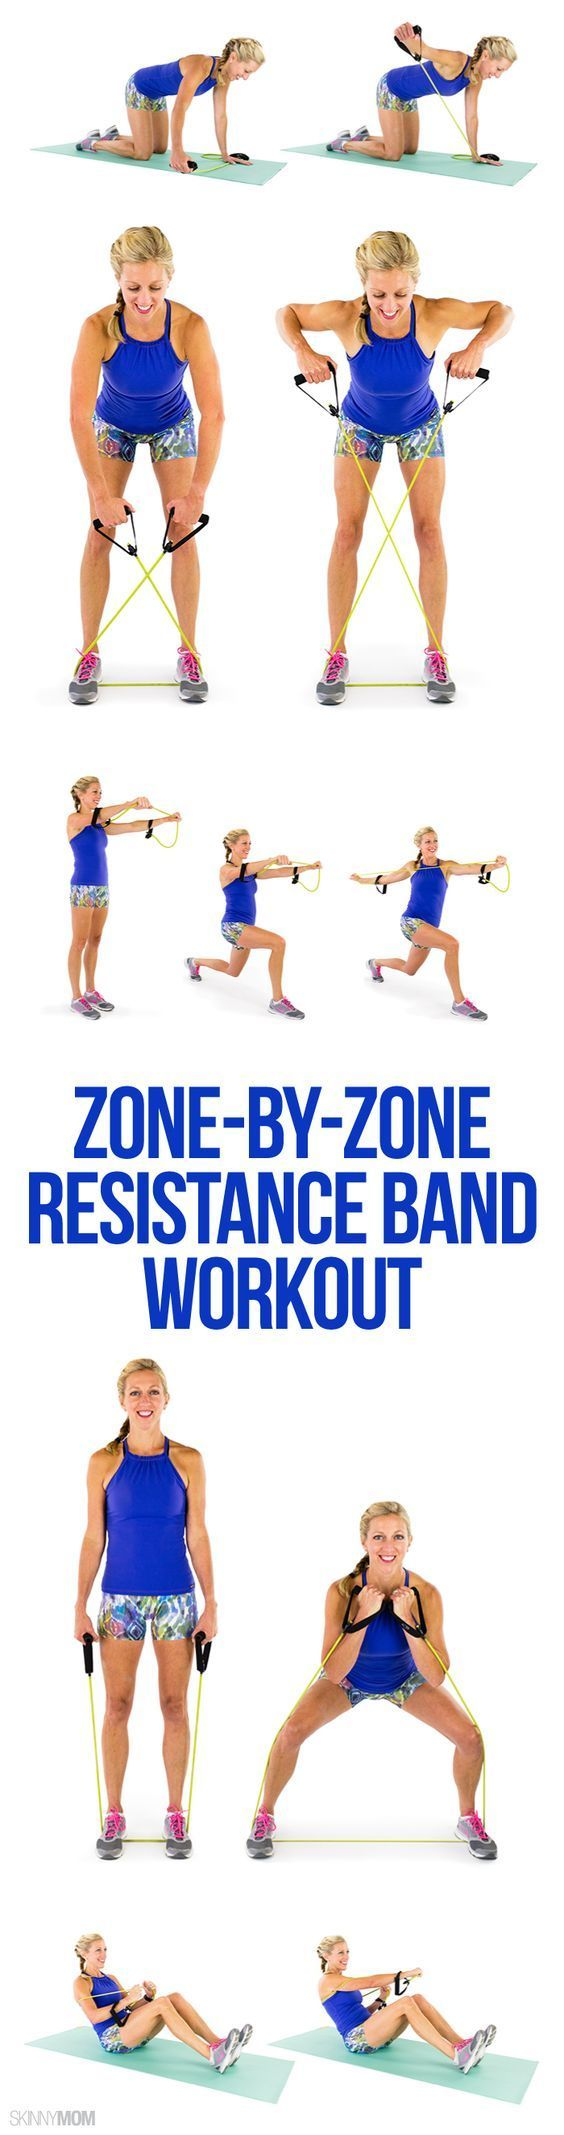 Resistance band workout find more relevant stuff: victoriajohnson.wordpress.com